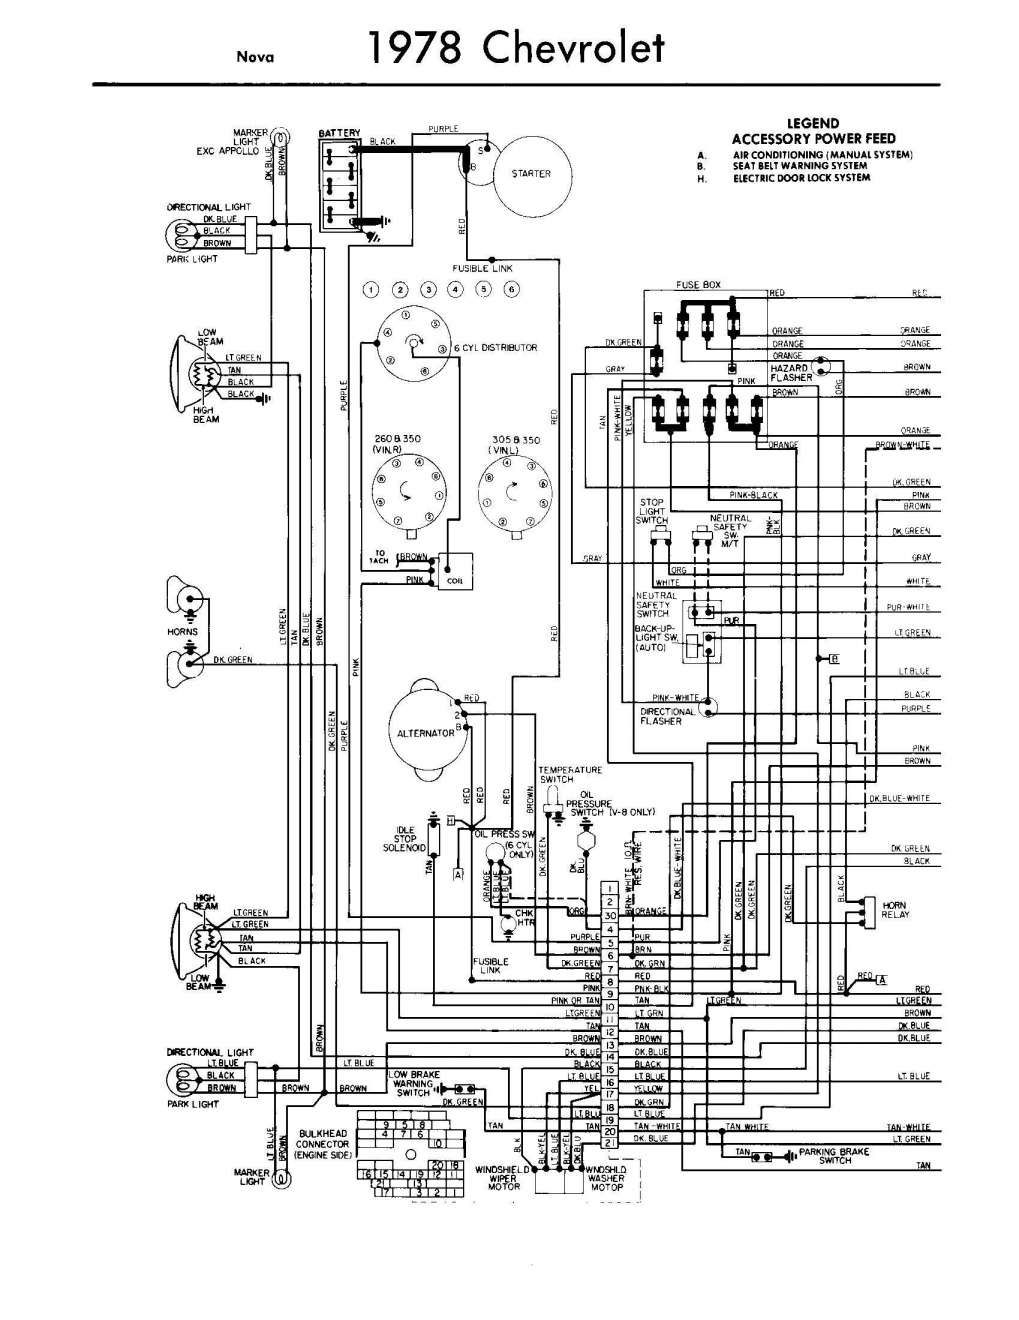 Can Bus Diagram Chevy Malibu. dfffa8 99 chevy malibu